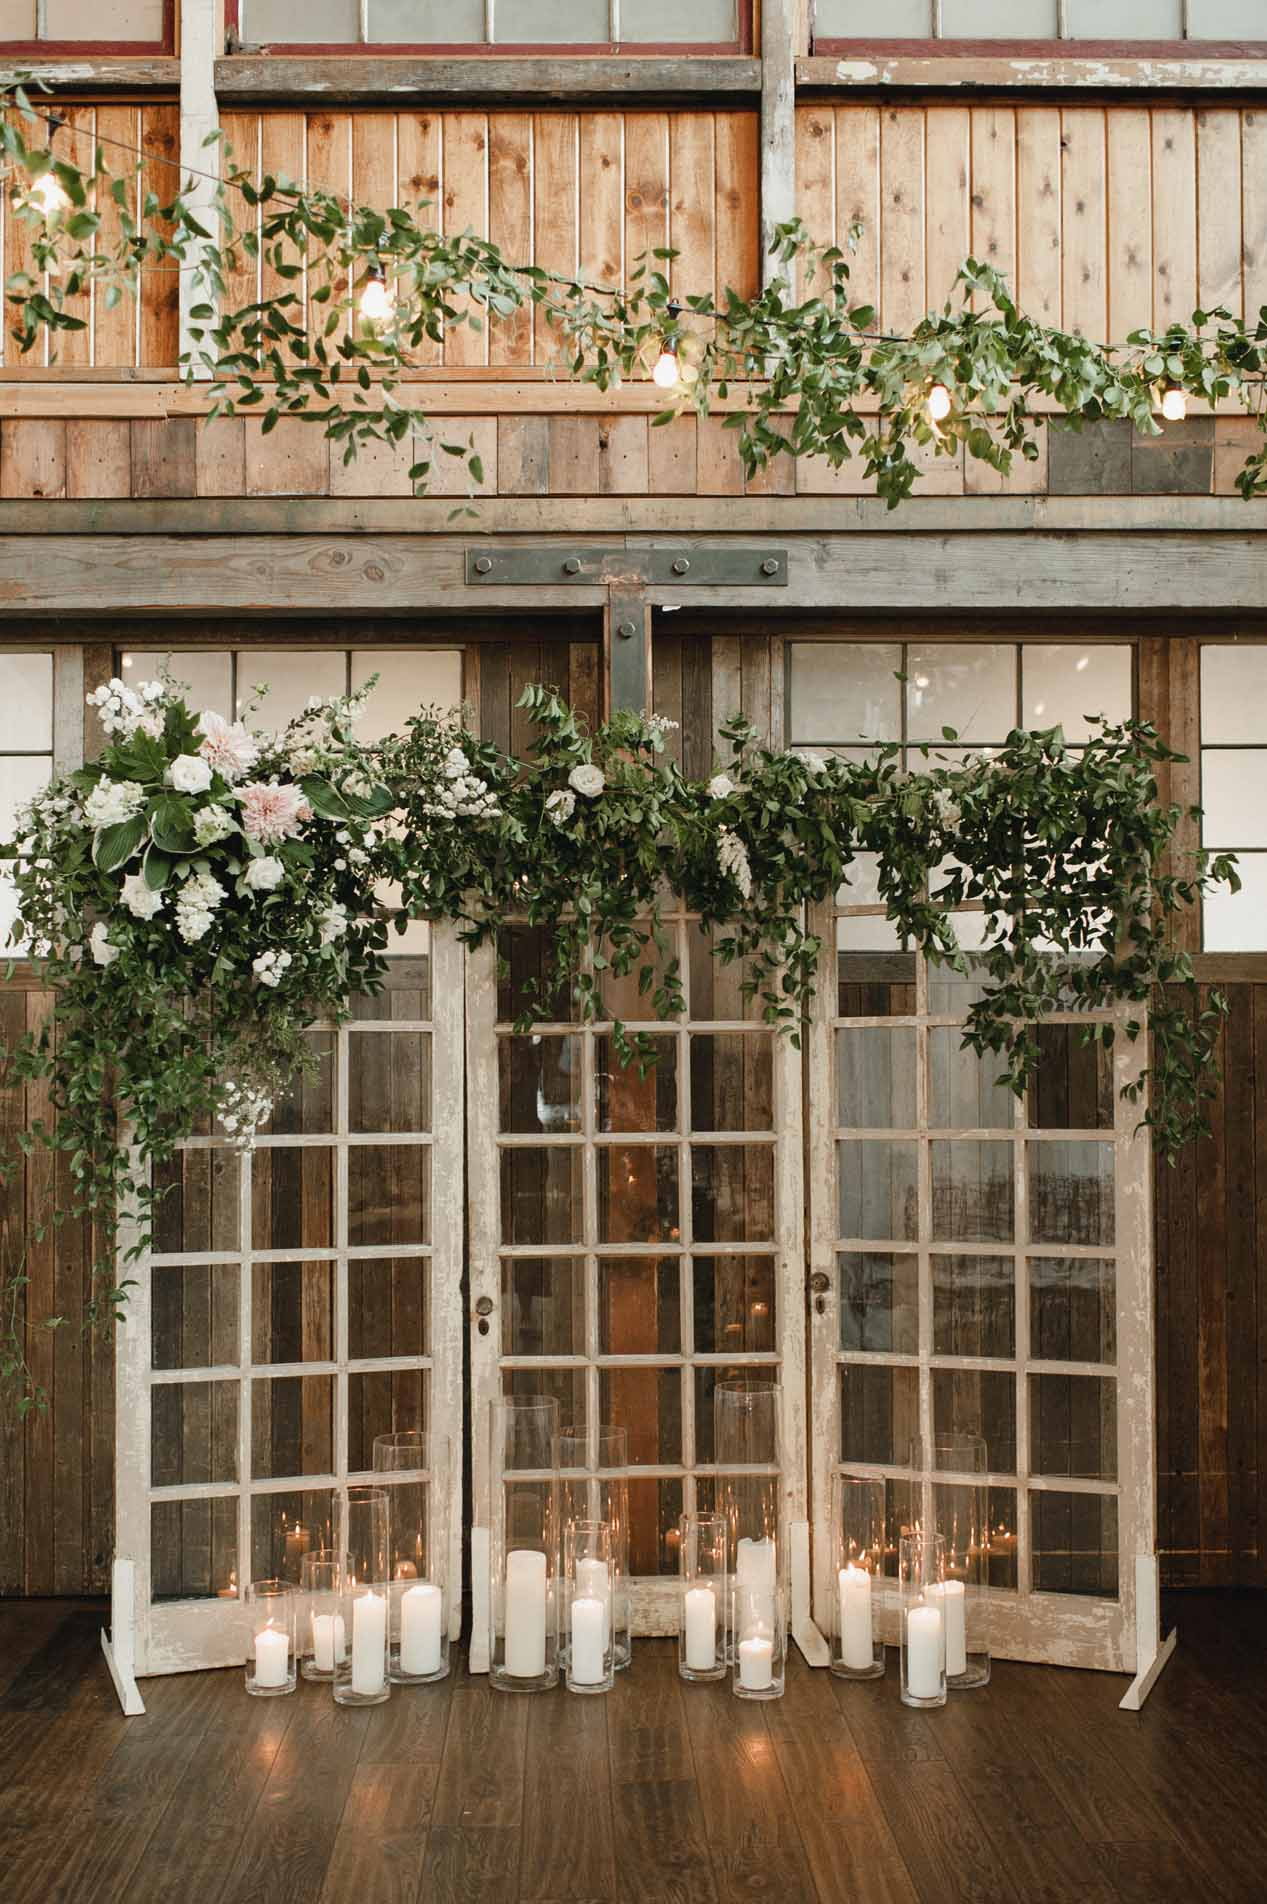 Wedding ceremony backdrop with antique glass doors, covered in smilax vines, and candles at the base - Greenery SoDo Park Wedding Flora Nova Design Seattle